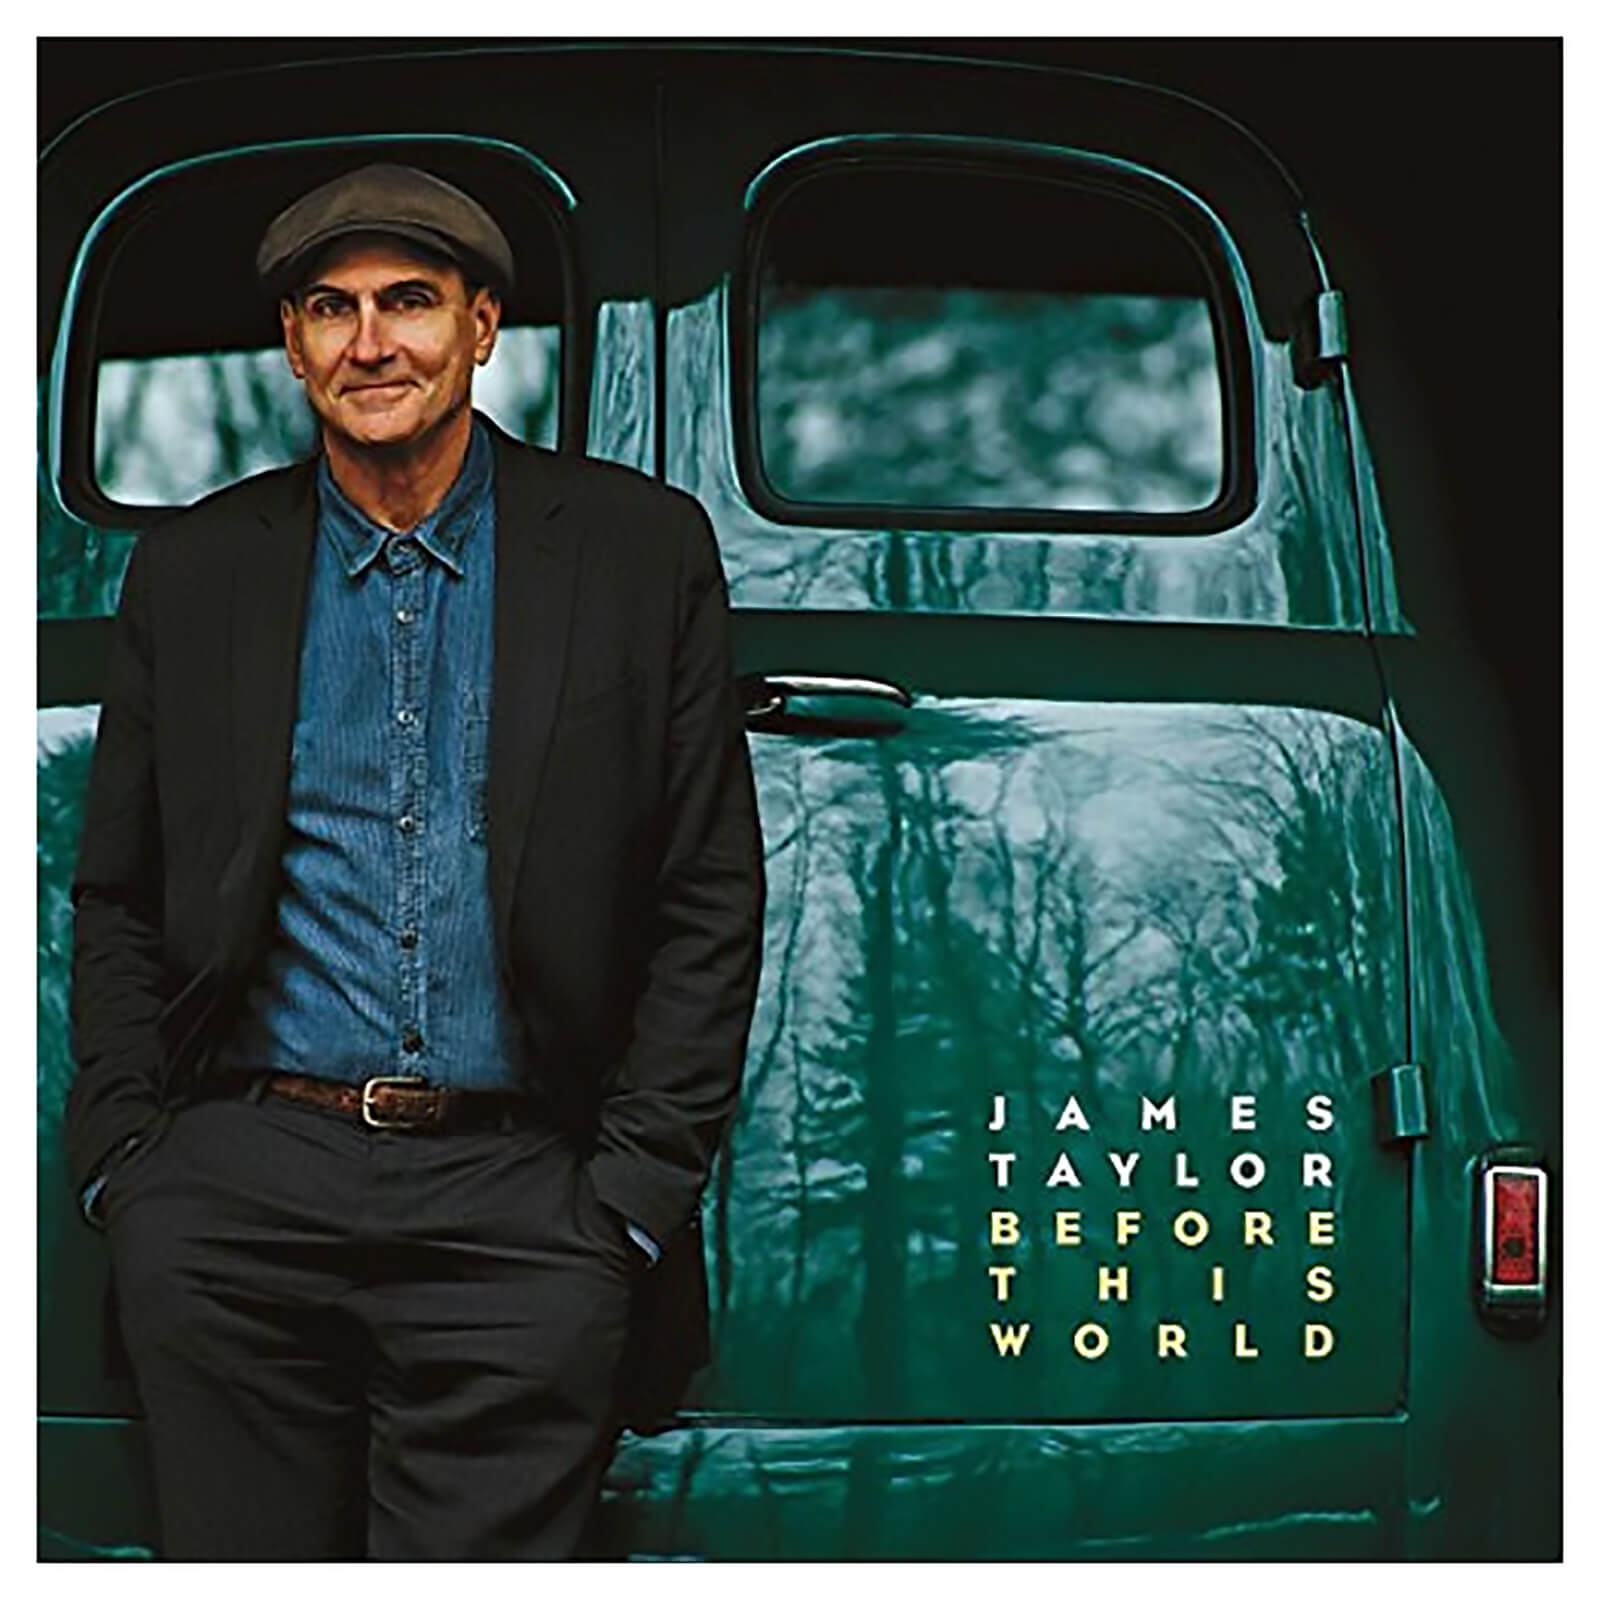 James Taylor - Before This World - Vinyl